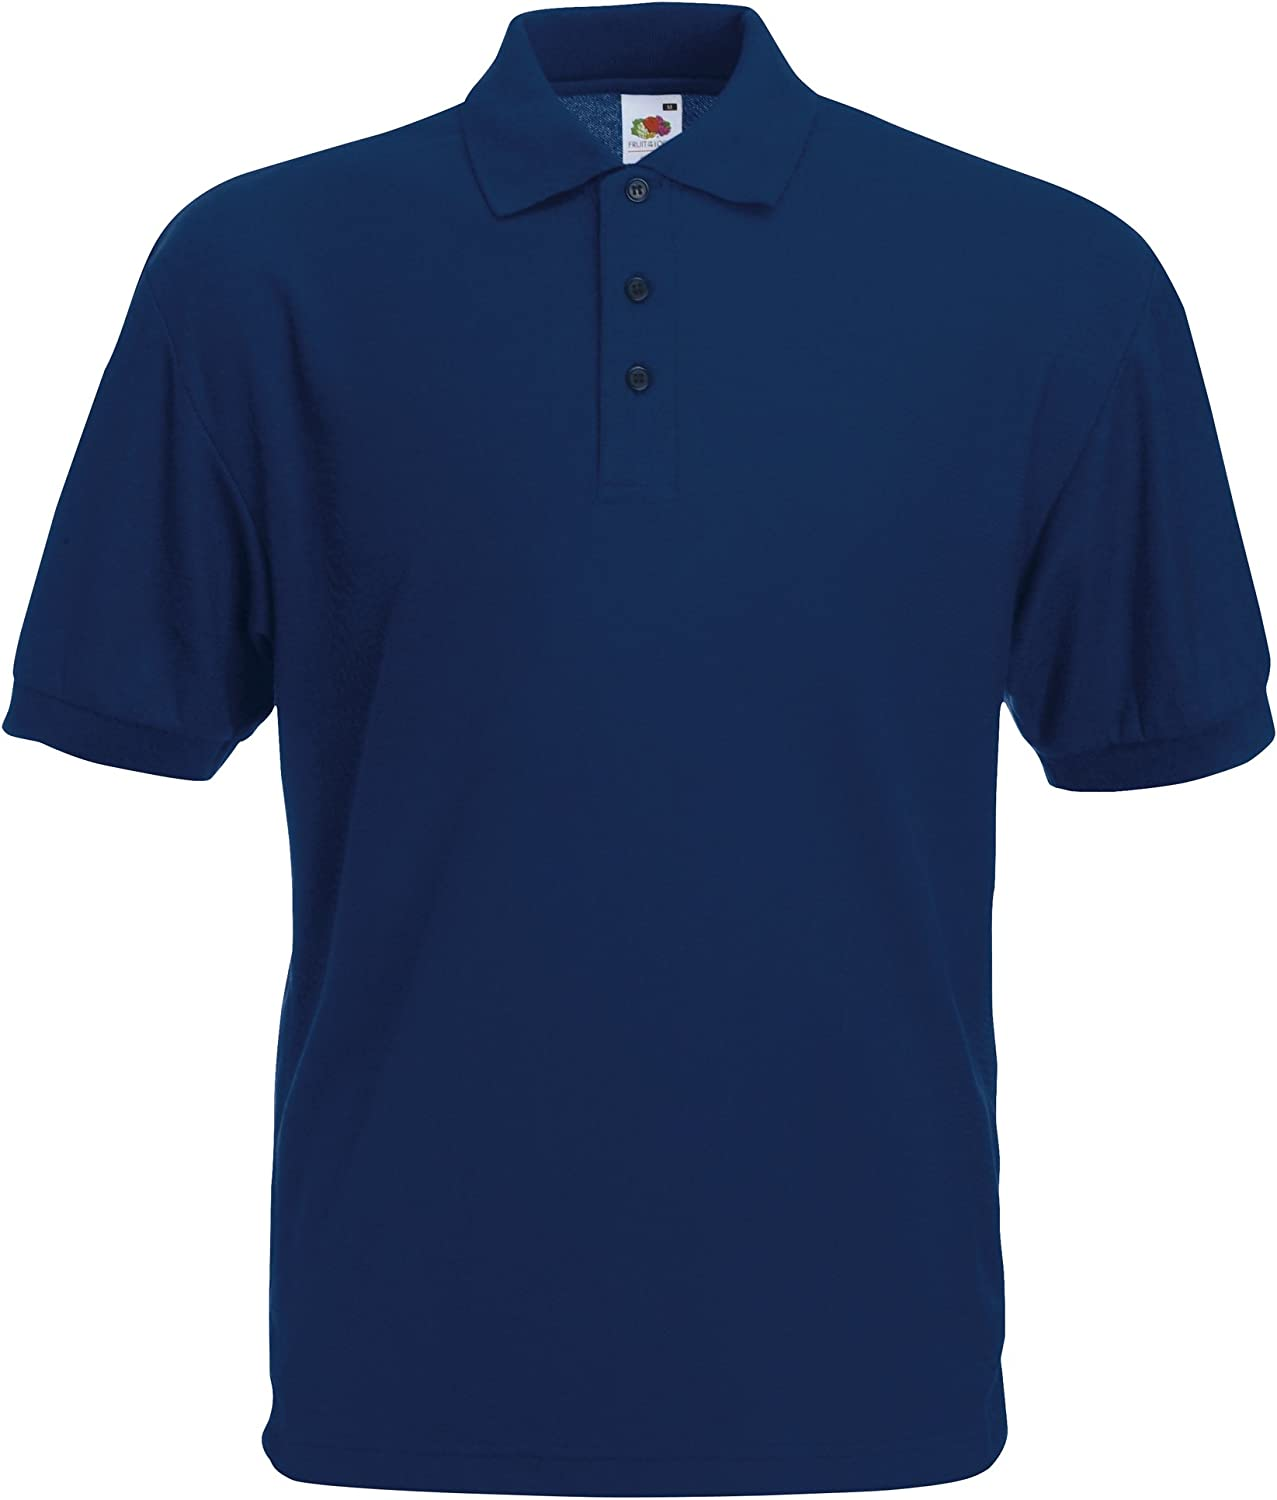 Fruit of the Loom Mens 65//35 Pique Polo Regular Fit Short Sleeve Polo Shirt